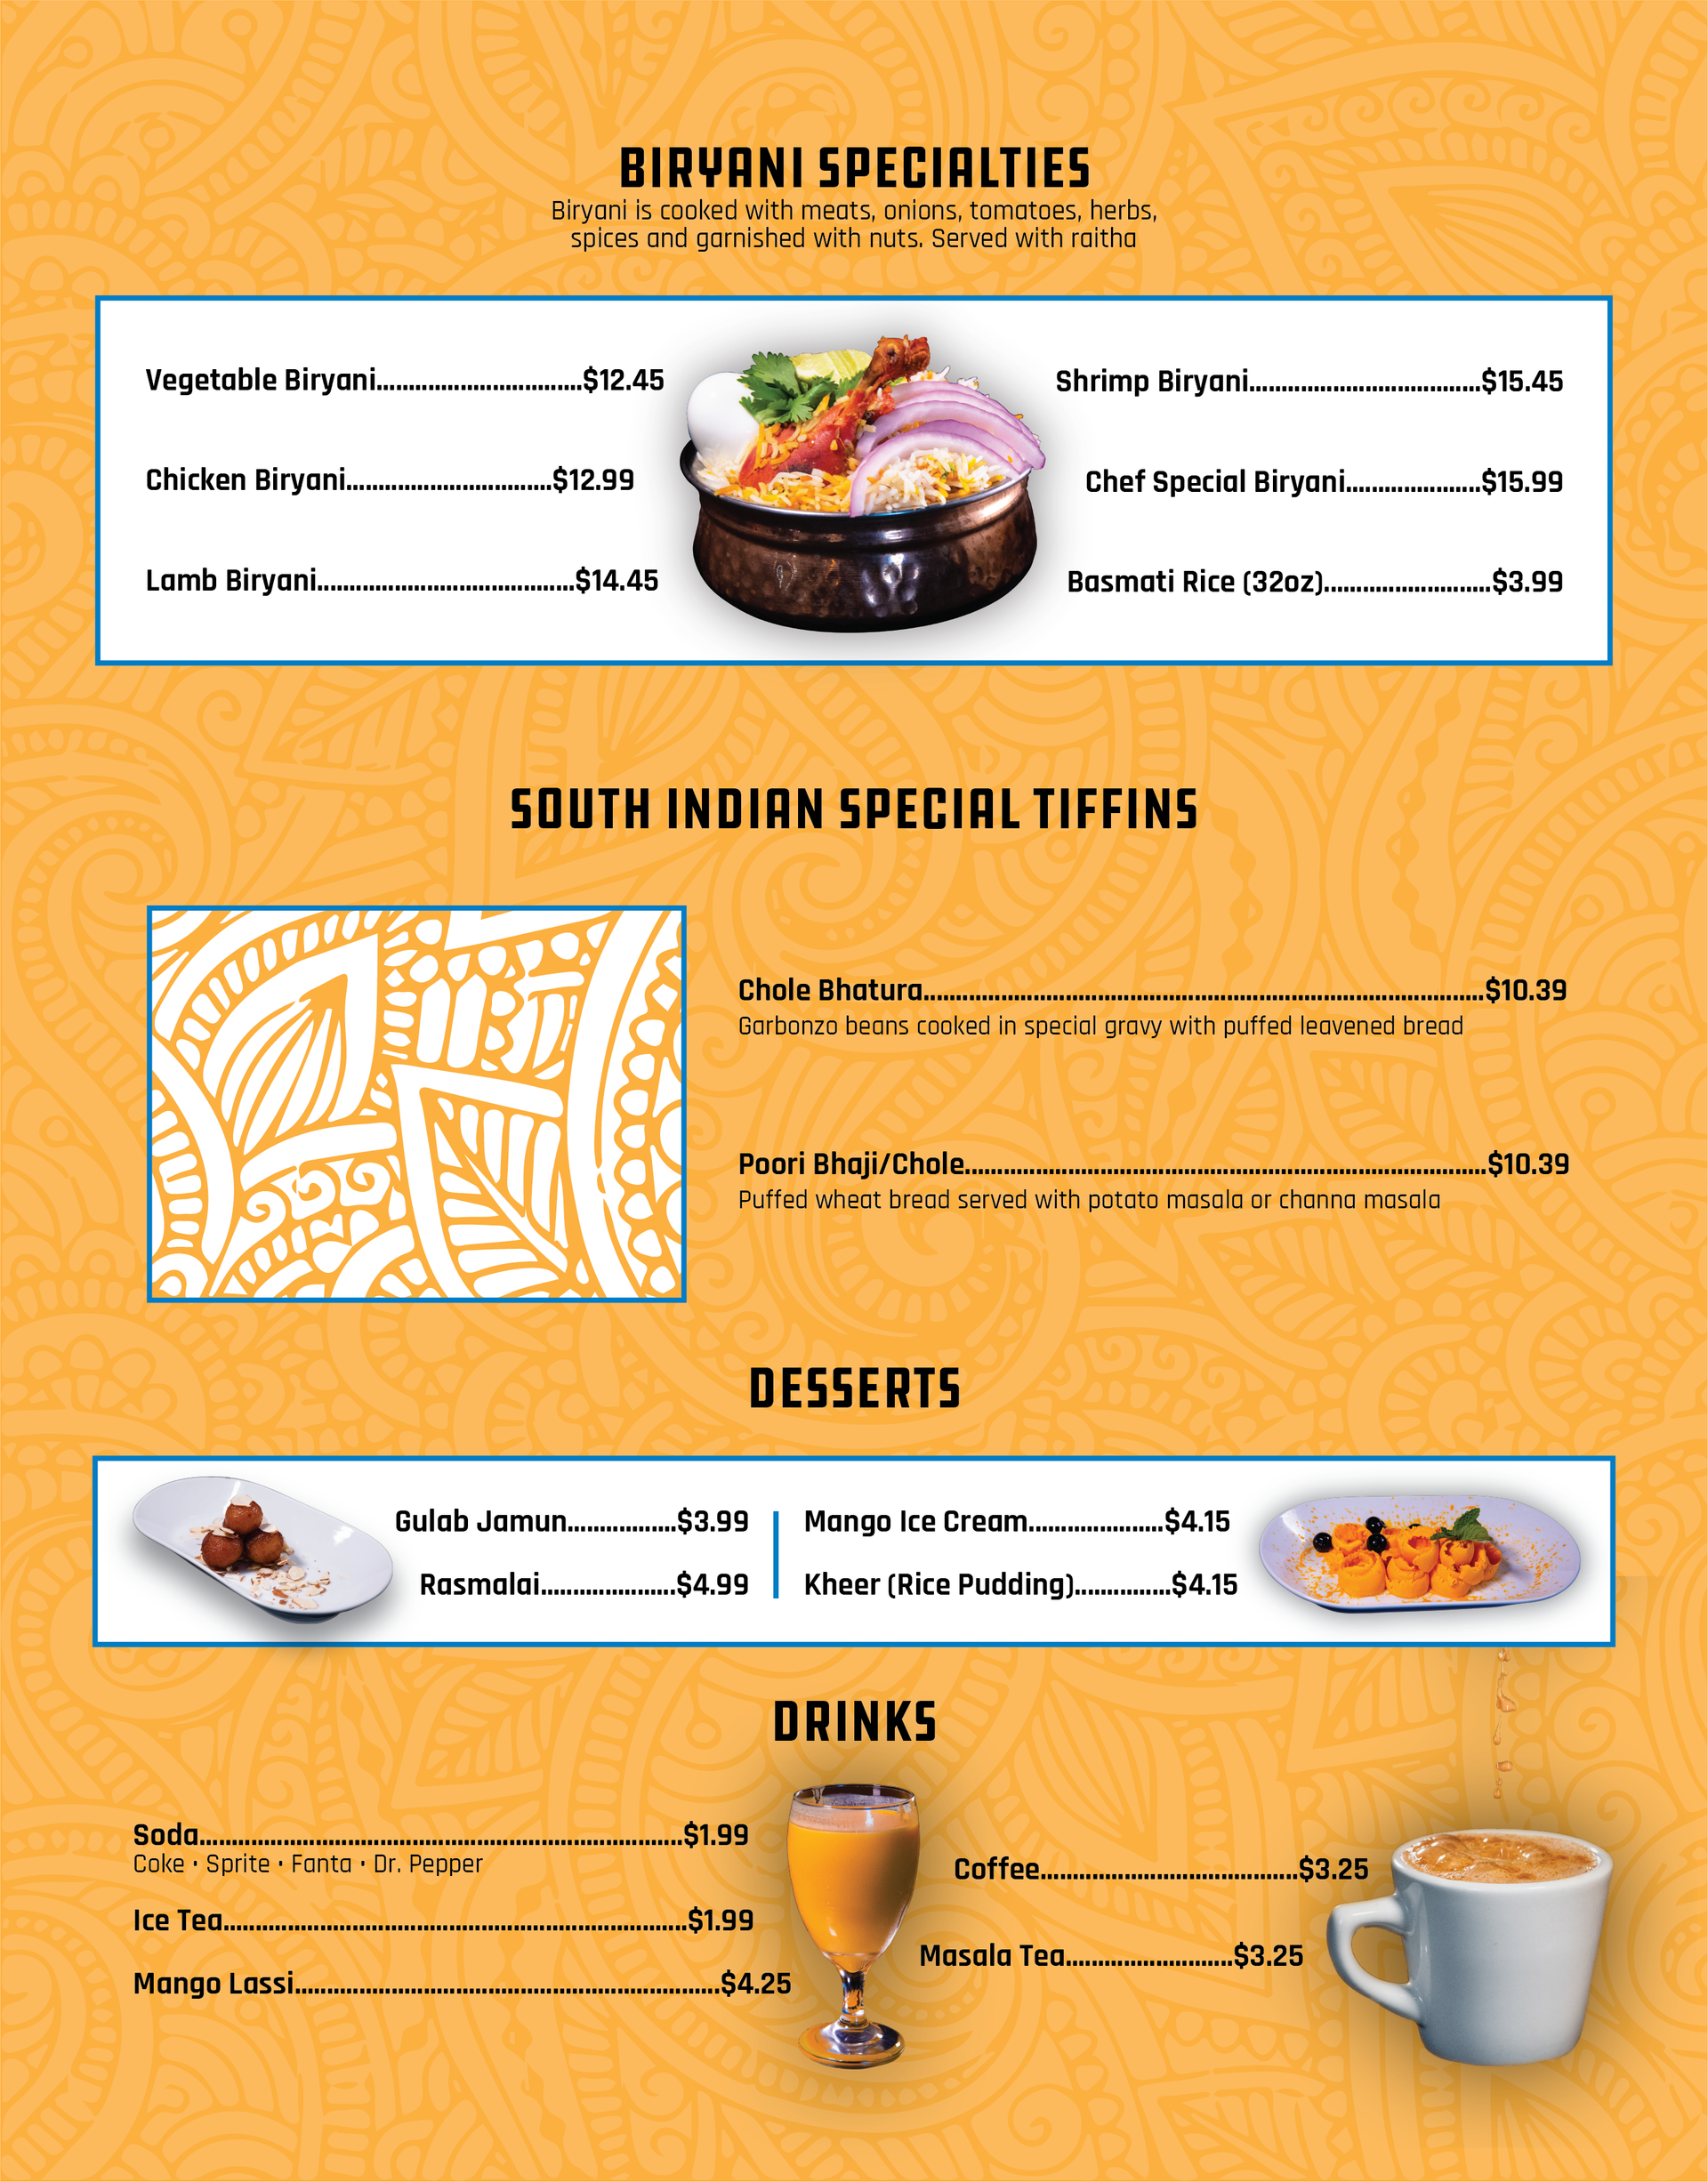 TheGlobe_Menu_8_bv_FINAL-05.png